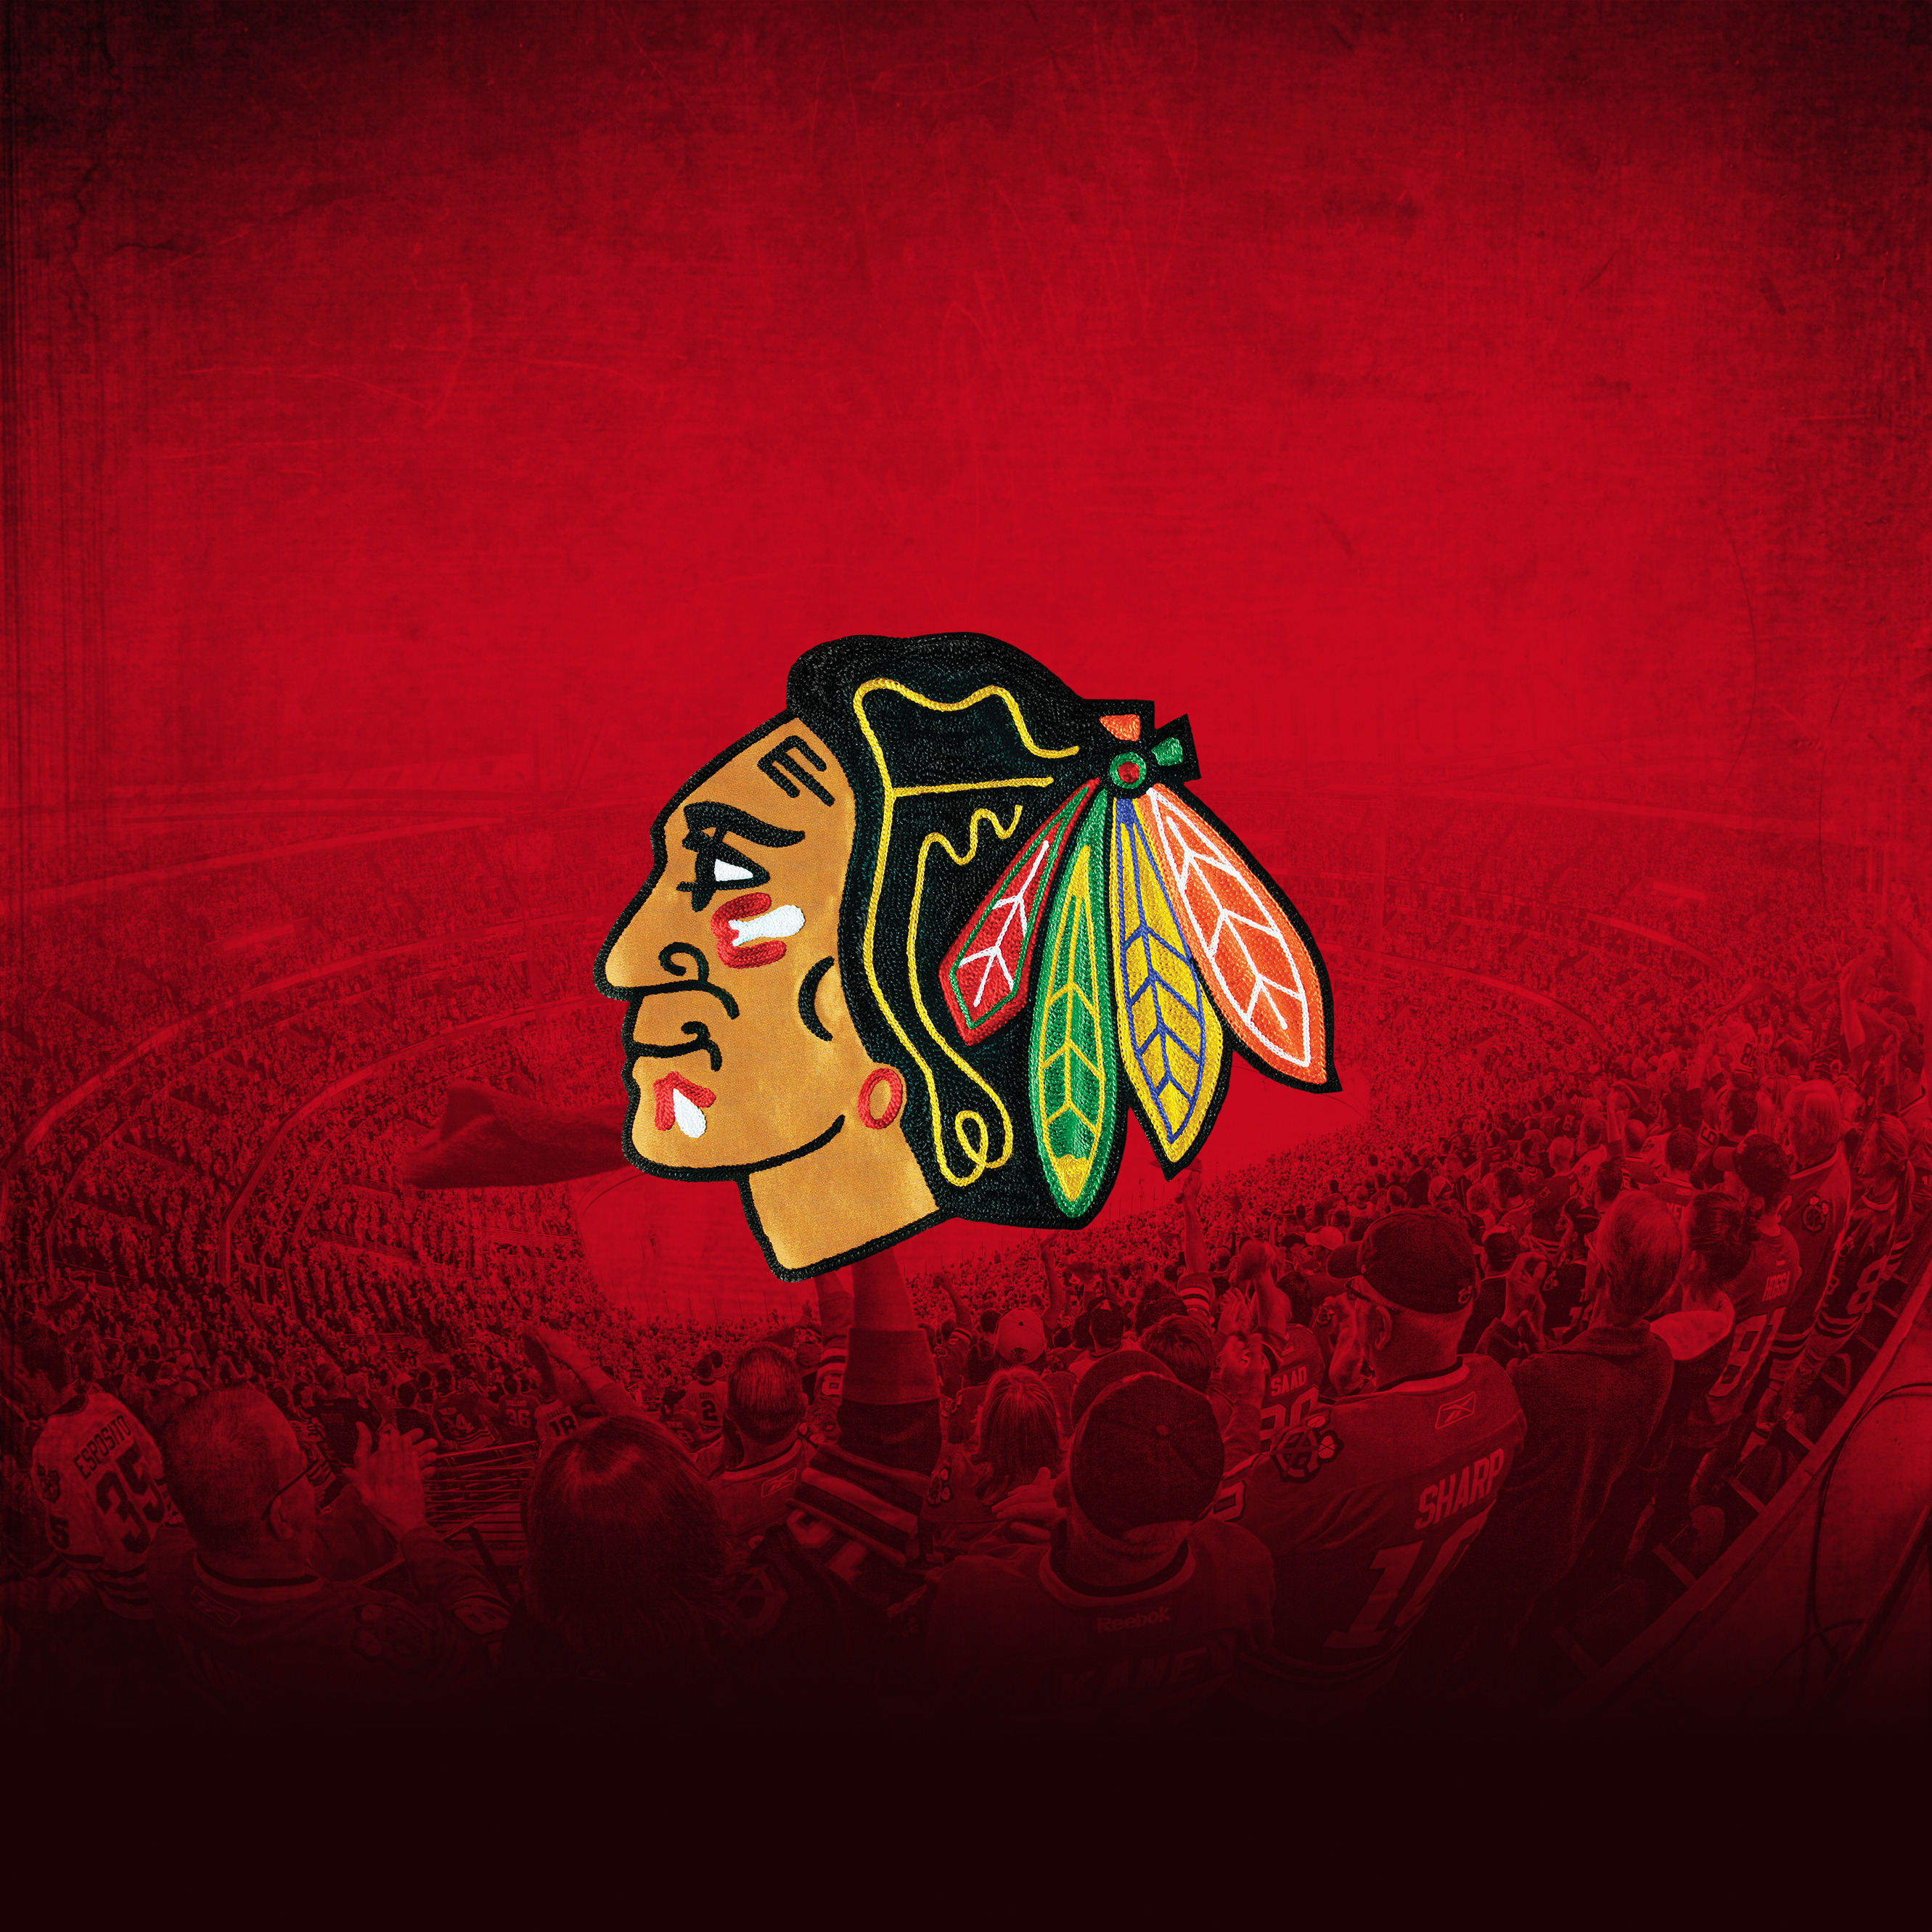 [46+] Chicago Blackhawks Wallpaper for iPad on WallpaperSafari